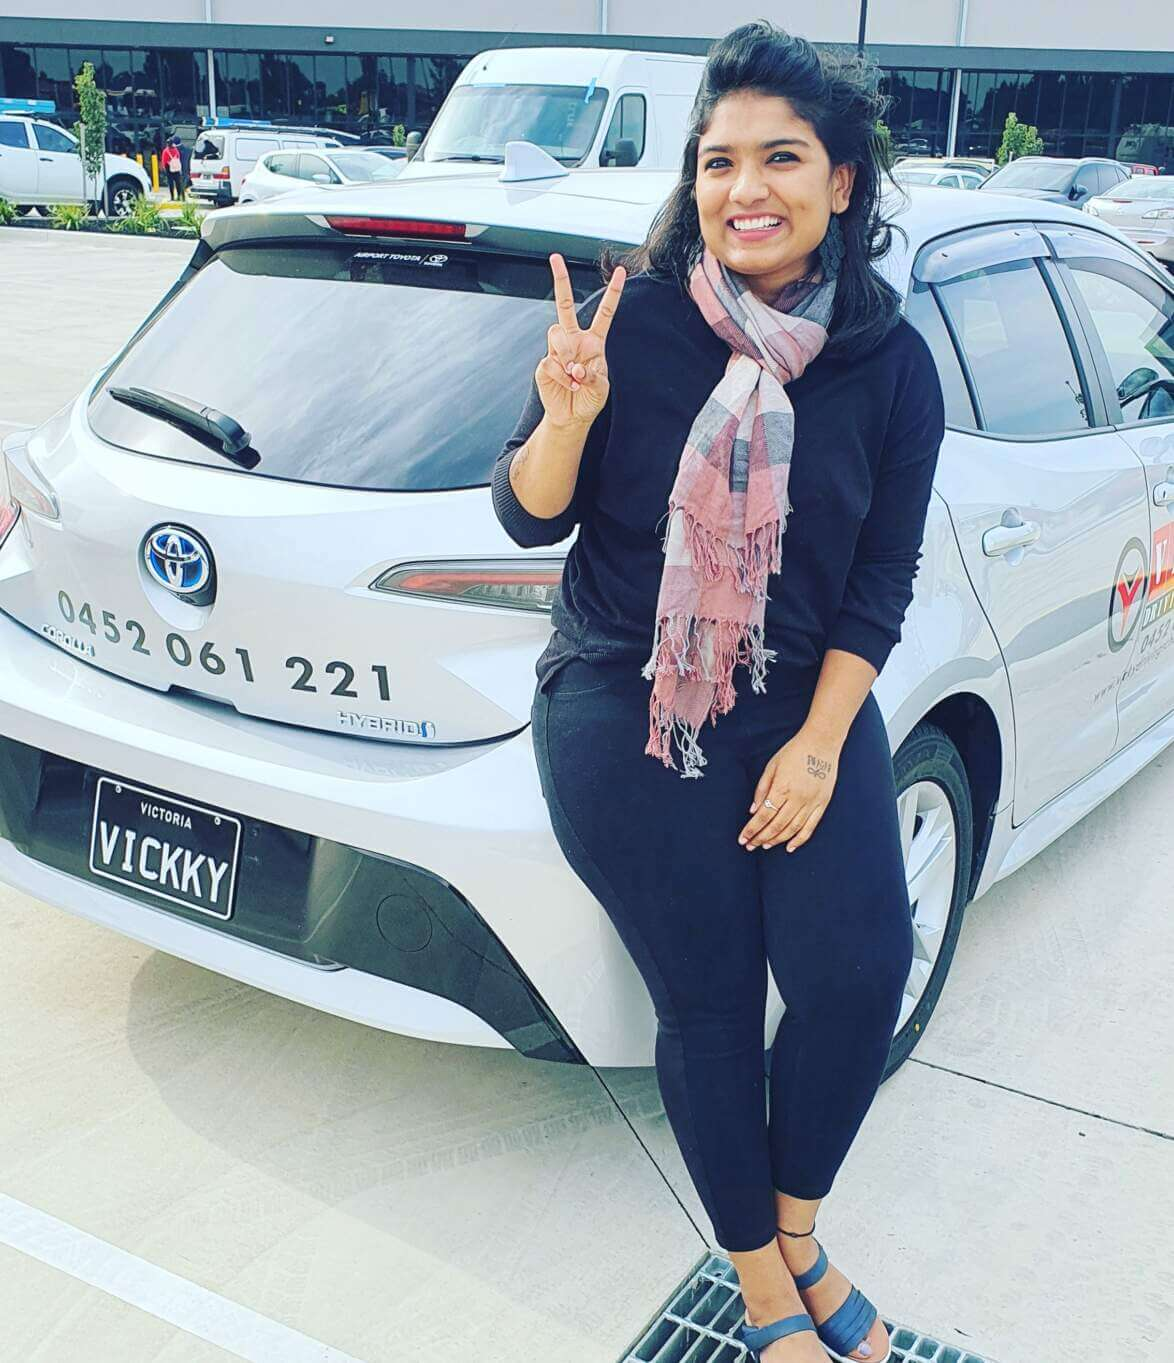 Vicky Driving School and Driving Instructors